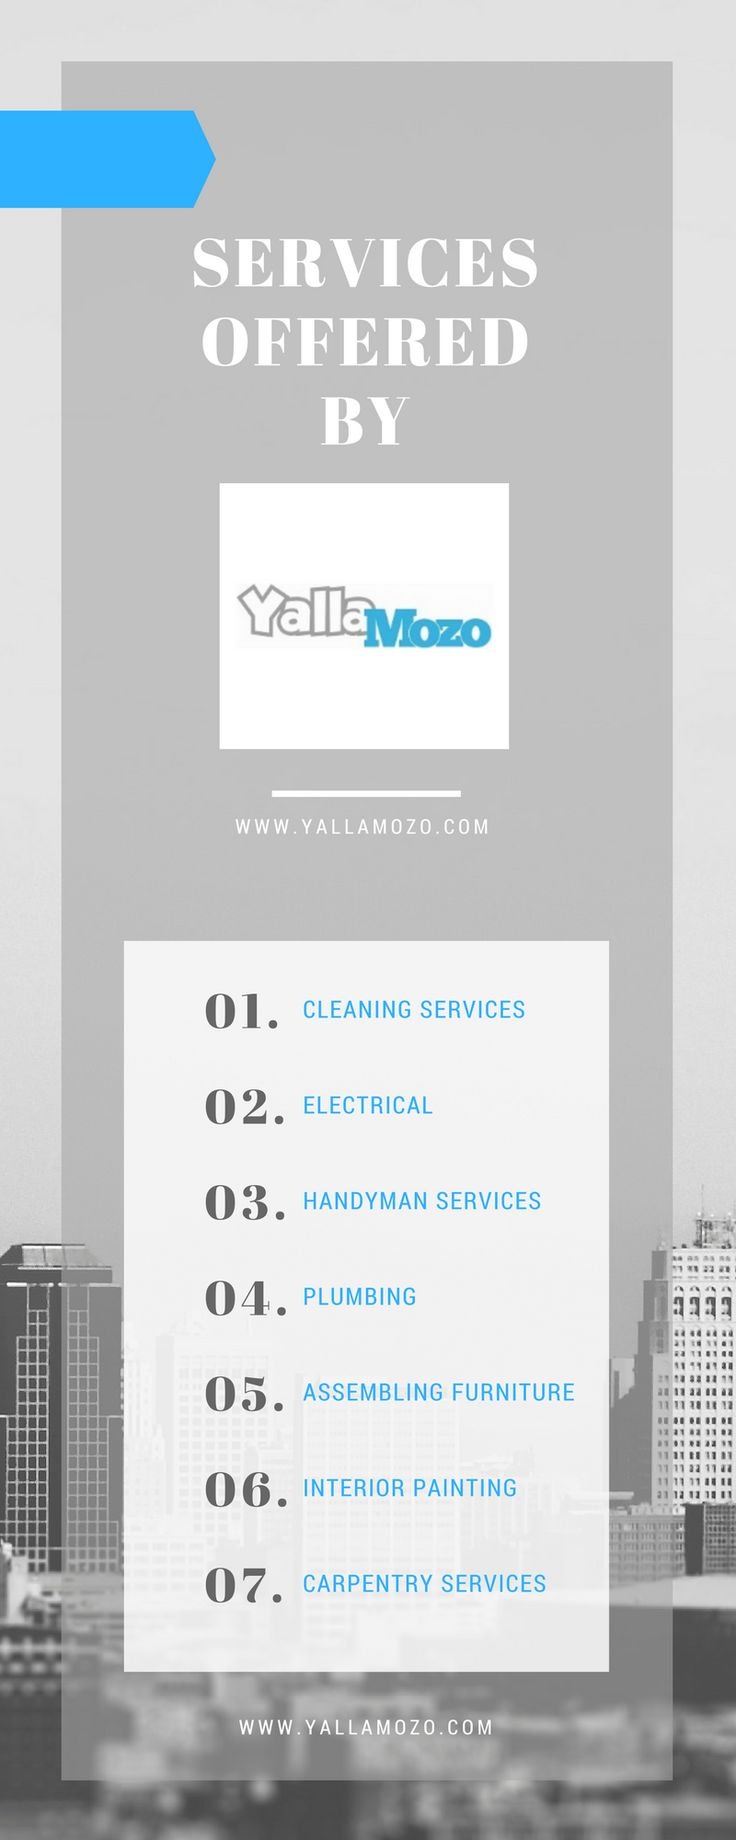 YallaMozo is an online handyman service provider that offers a wide range of handyman and housekeeping services online like carpentry services, TV Wall Mount, office cleaning services, plumbing and a lot more. Visit www.yallamozo.com to book an appointment now.